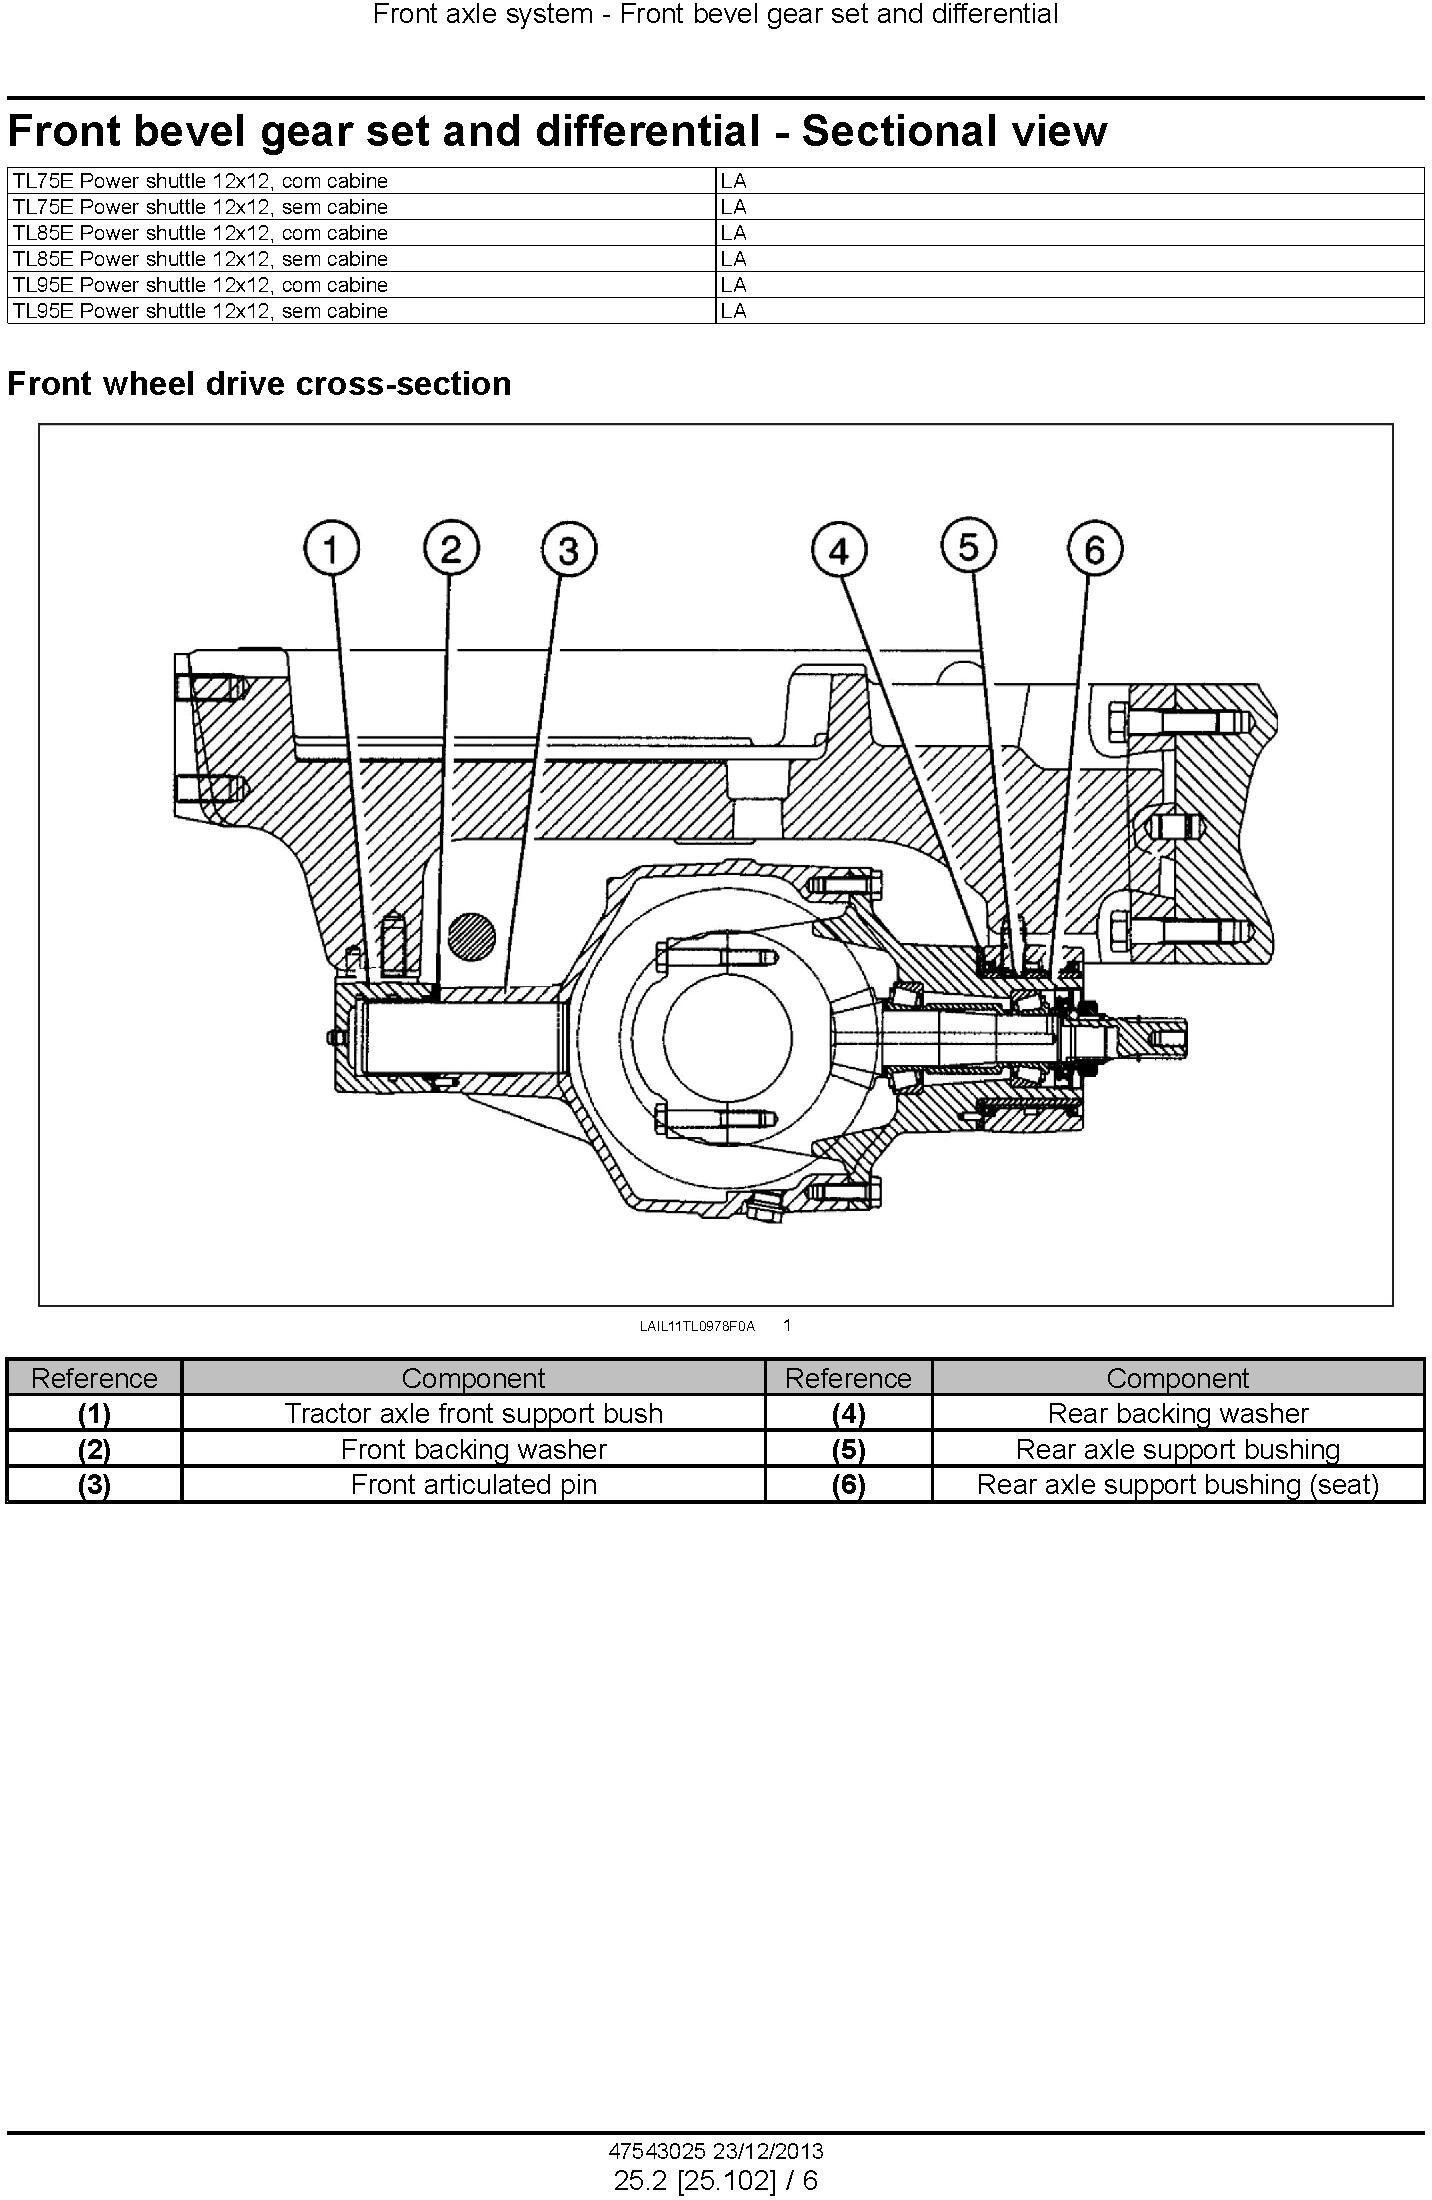 New Holland TL75E, TL85E, TL95E Power Shuttle Latin American Tractor Service Manual - 2